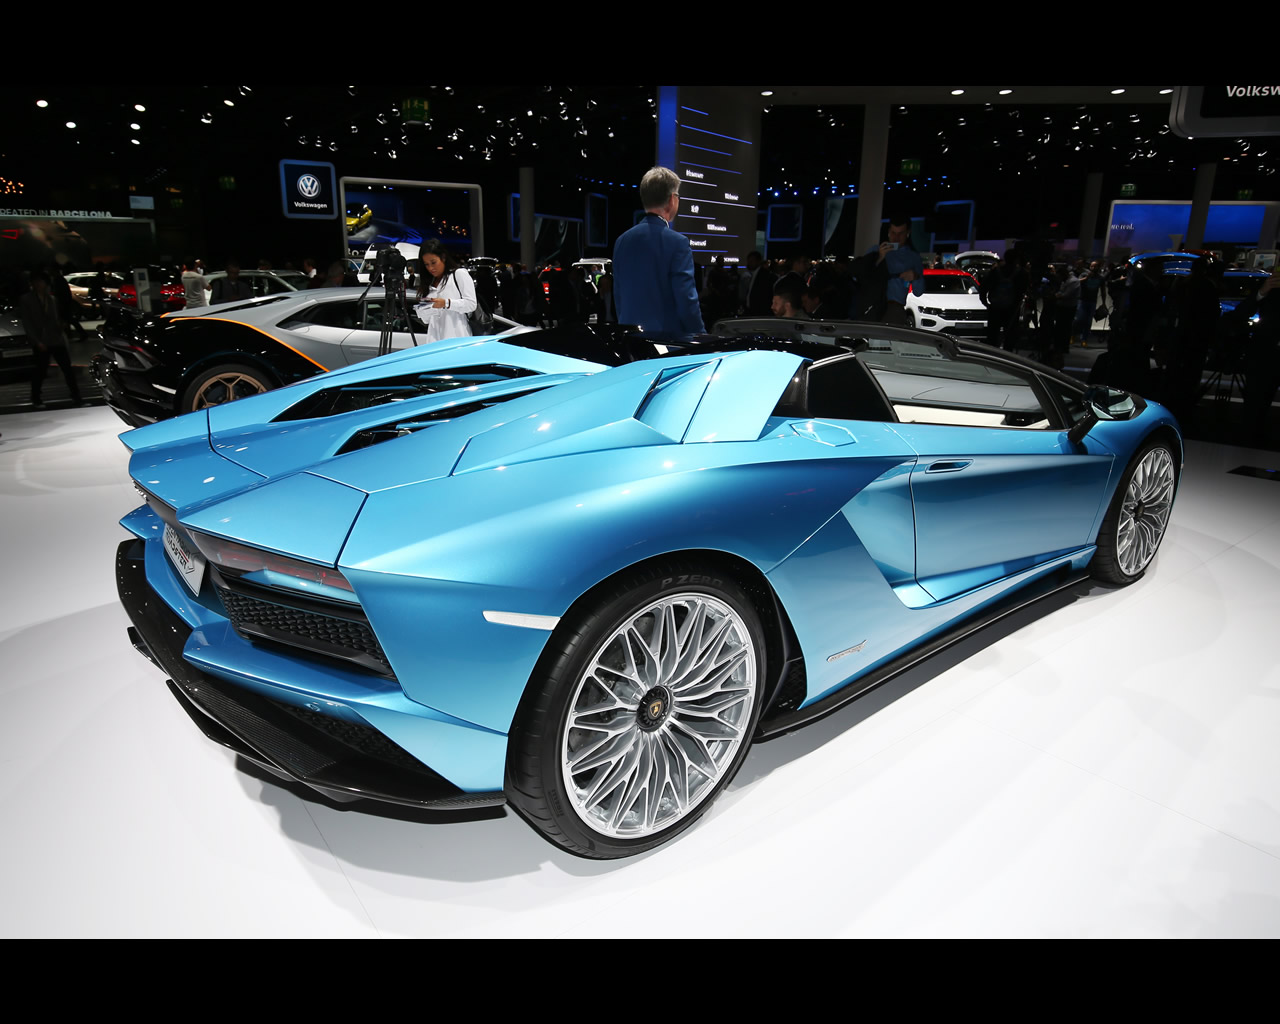 2017 lamborghini aventador price usd html with Cars Reviews Lamborghini Aventador S Roadster 2017 on Cars reviews Lamborghini Aventador S Roadster 2017 as well Robson Design Carbon Fiber Car Accessories Interior We further Expanding Nut furthermore P Rm6937gy further P Rm6937c.